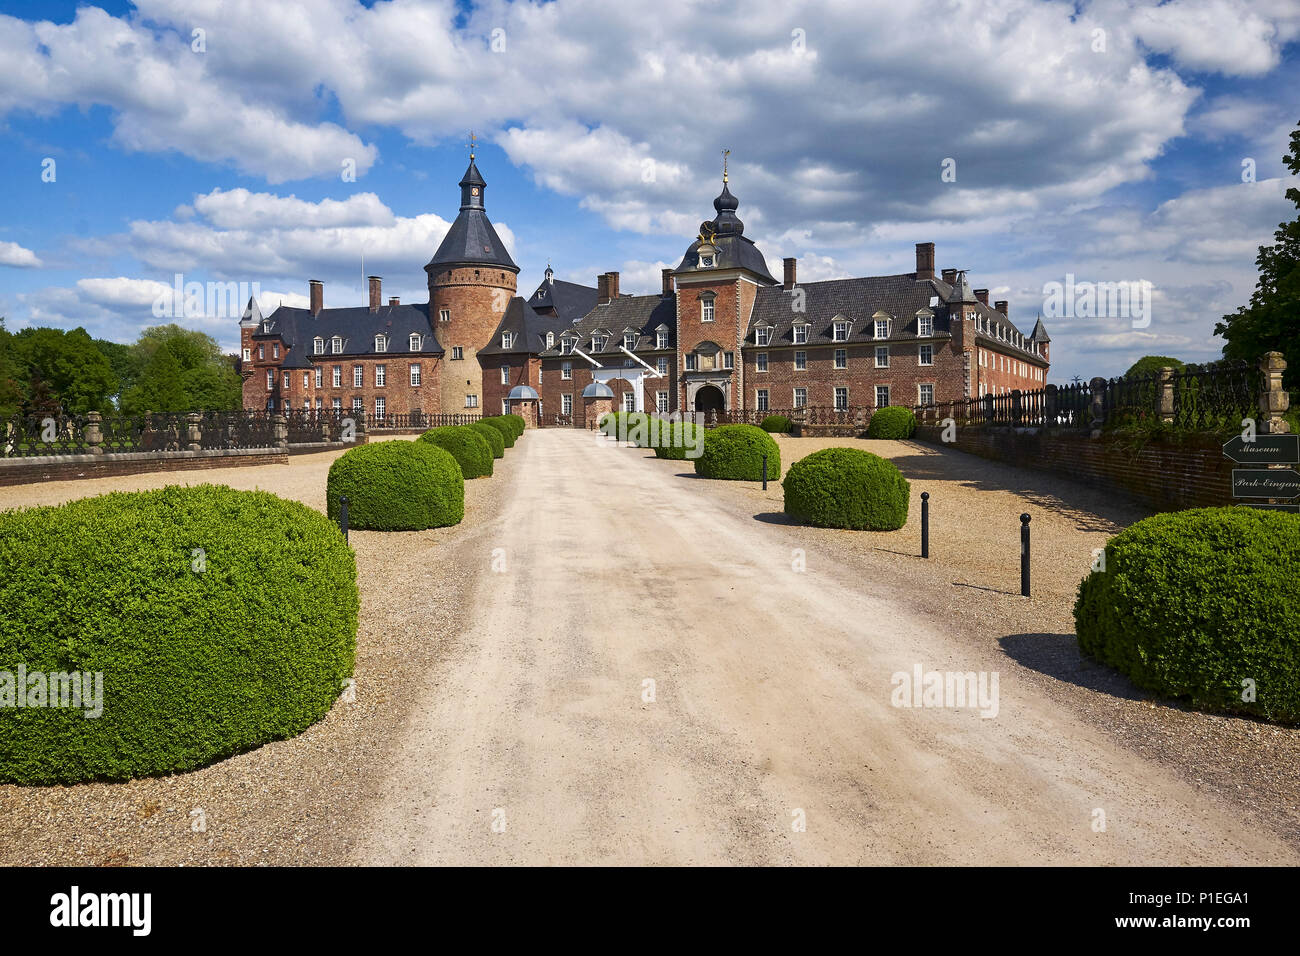 Anholt castle, Borken, North Rhine-Westphalia, Germany - Stock Image